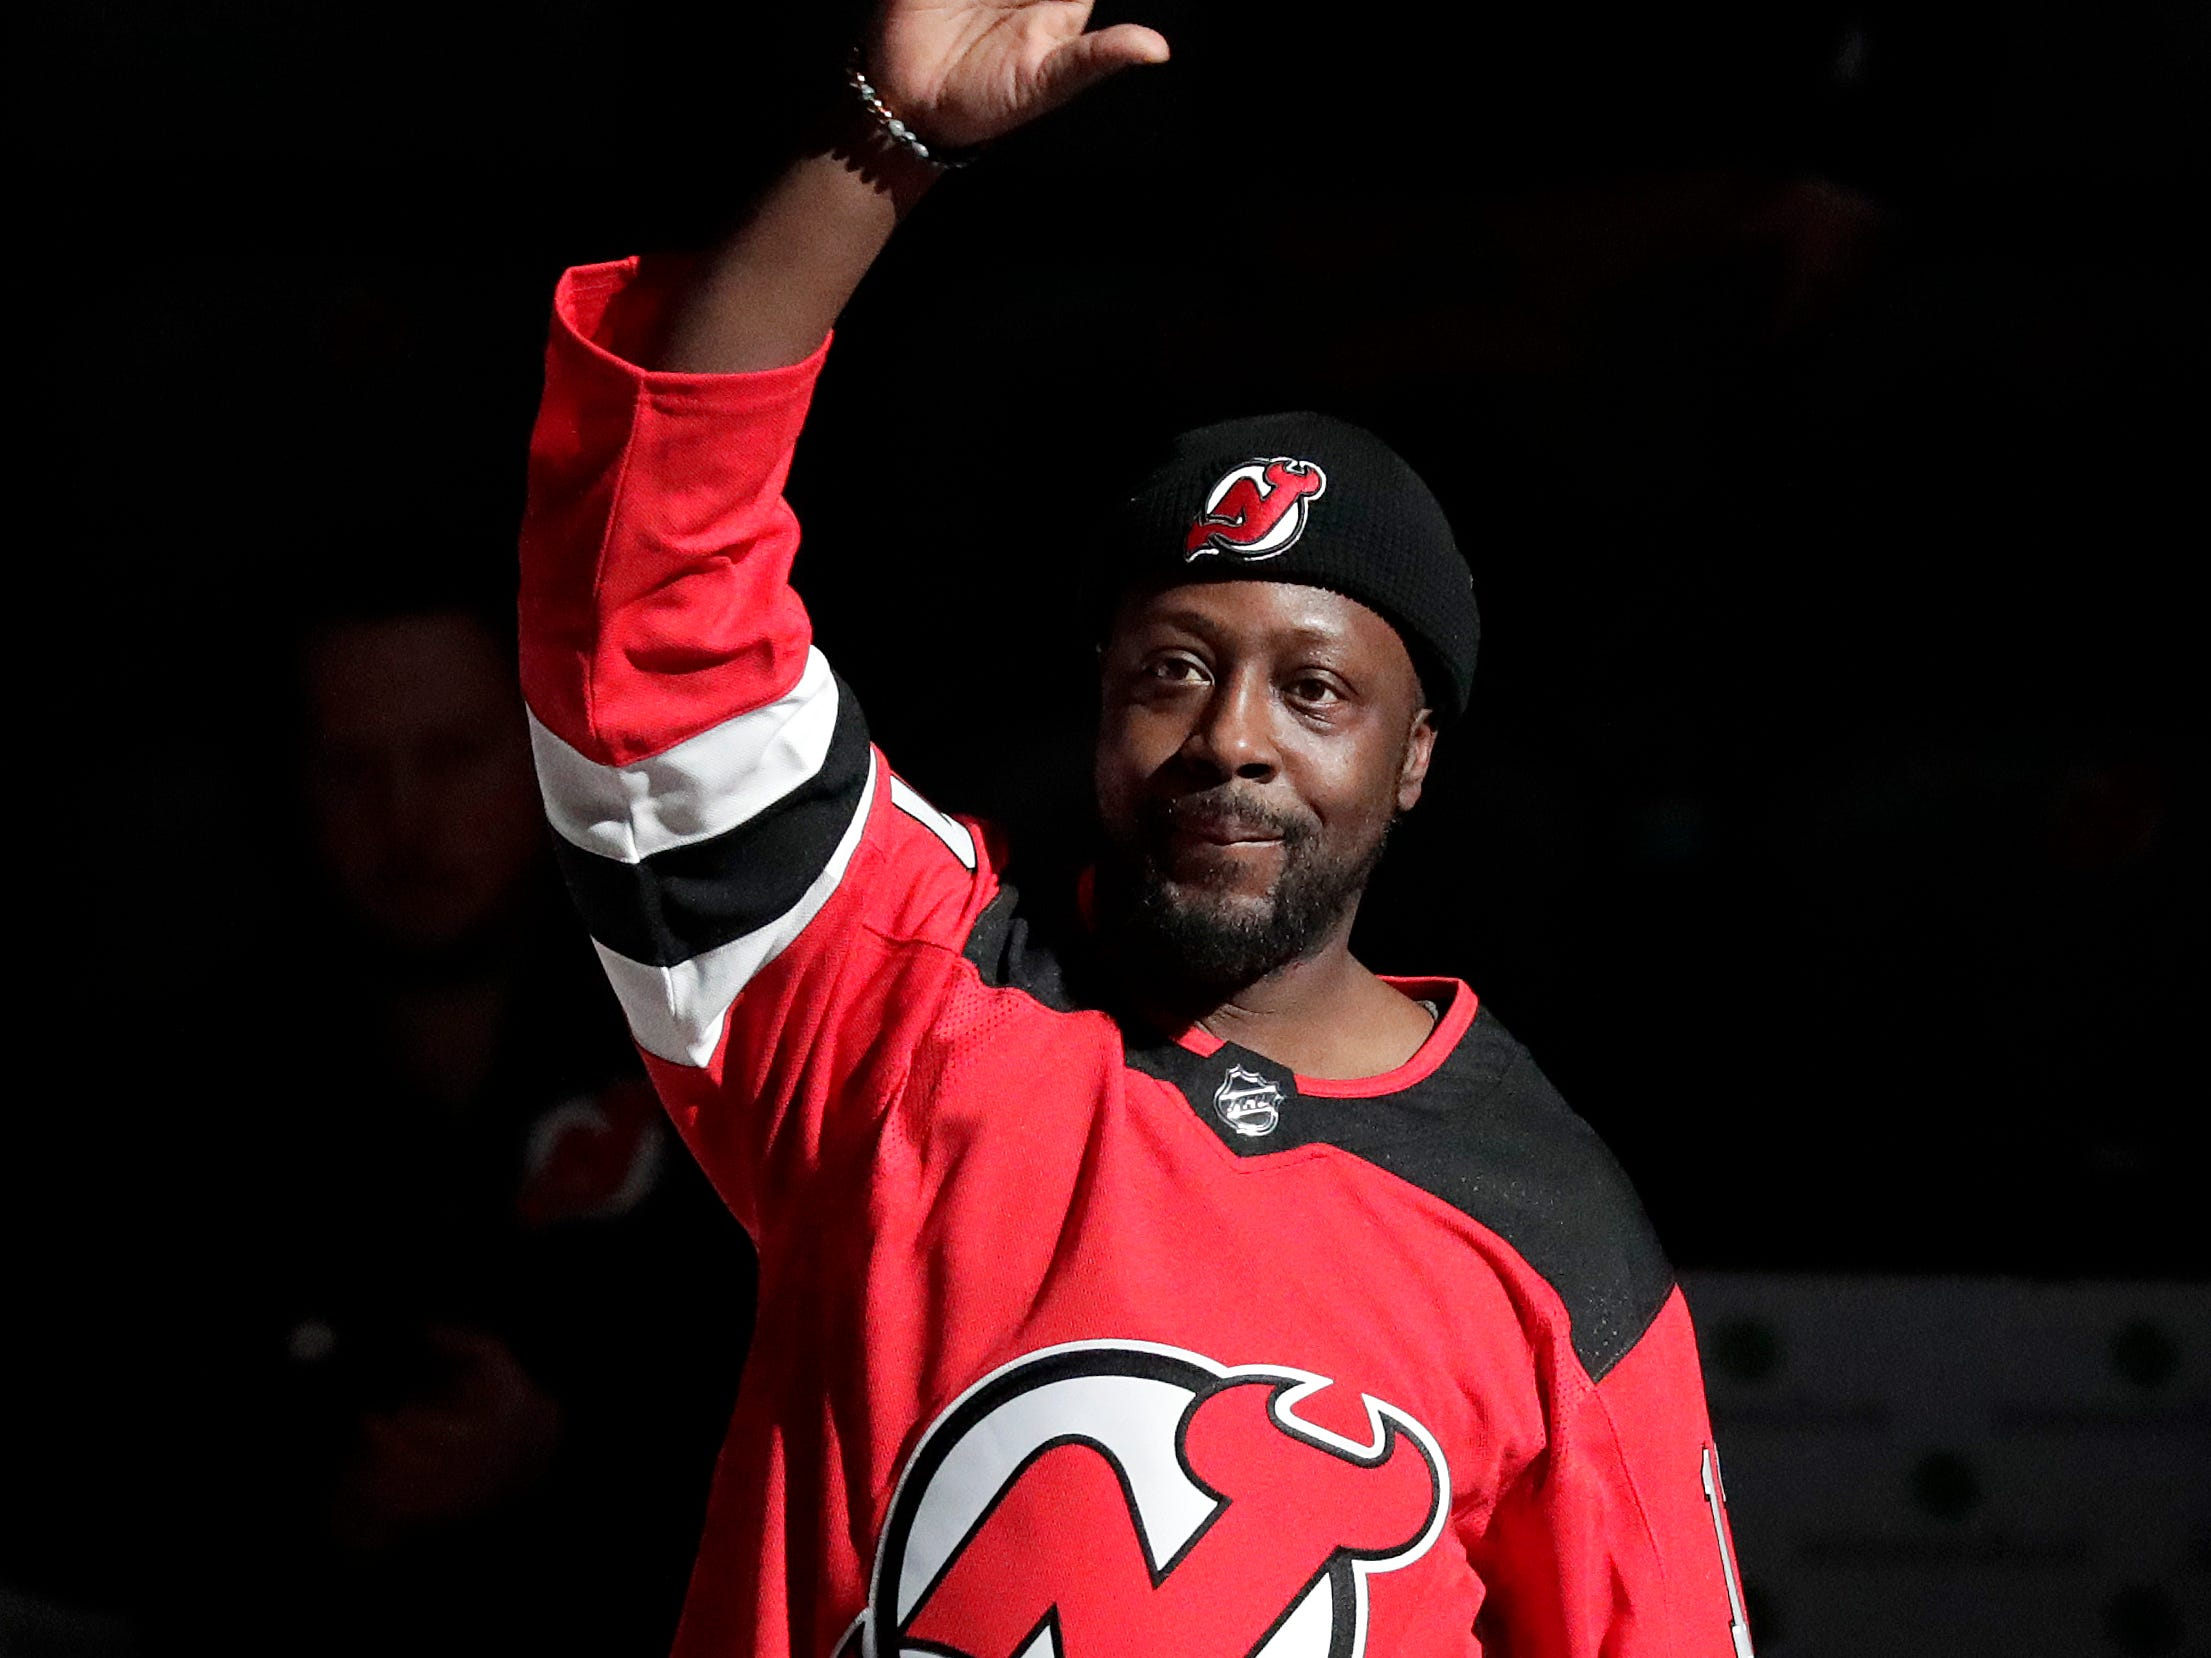 Rapper Wyclef Jean walks to center ice for the ceremonial puck drop prior to an NHL hockey game between the New Jersey Devils and the Ottawa Senators, Thursday, Feb. 21, 2019, in Newark, N.J.